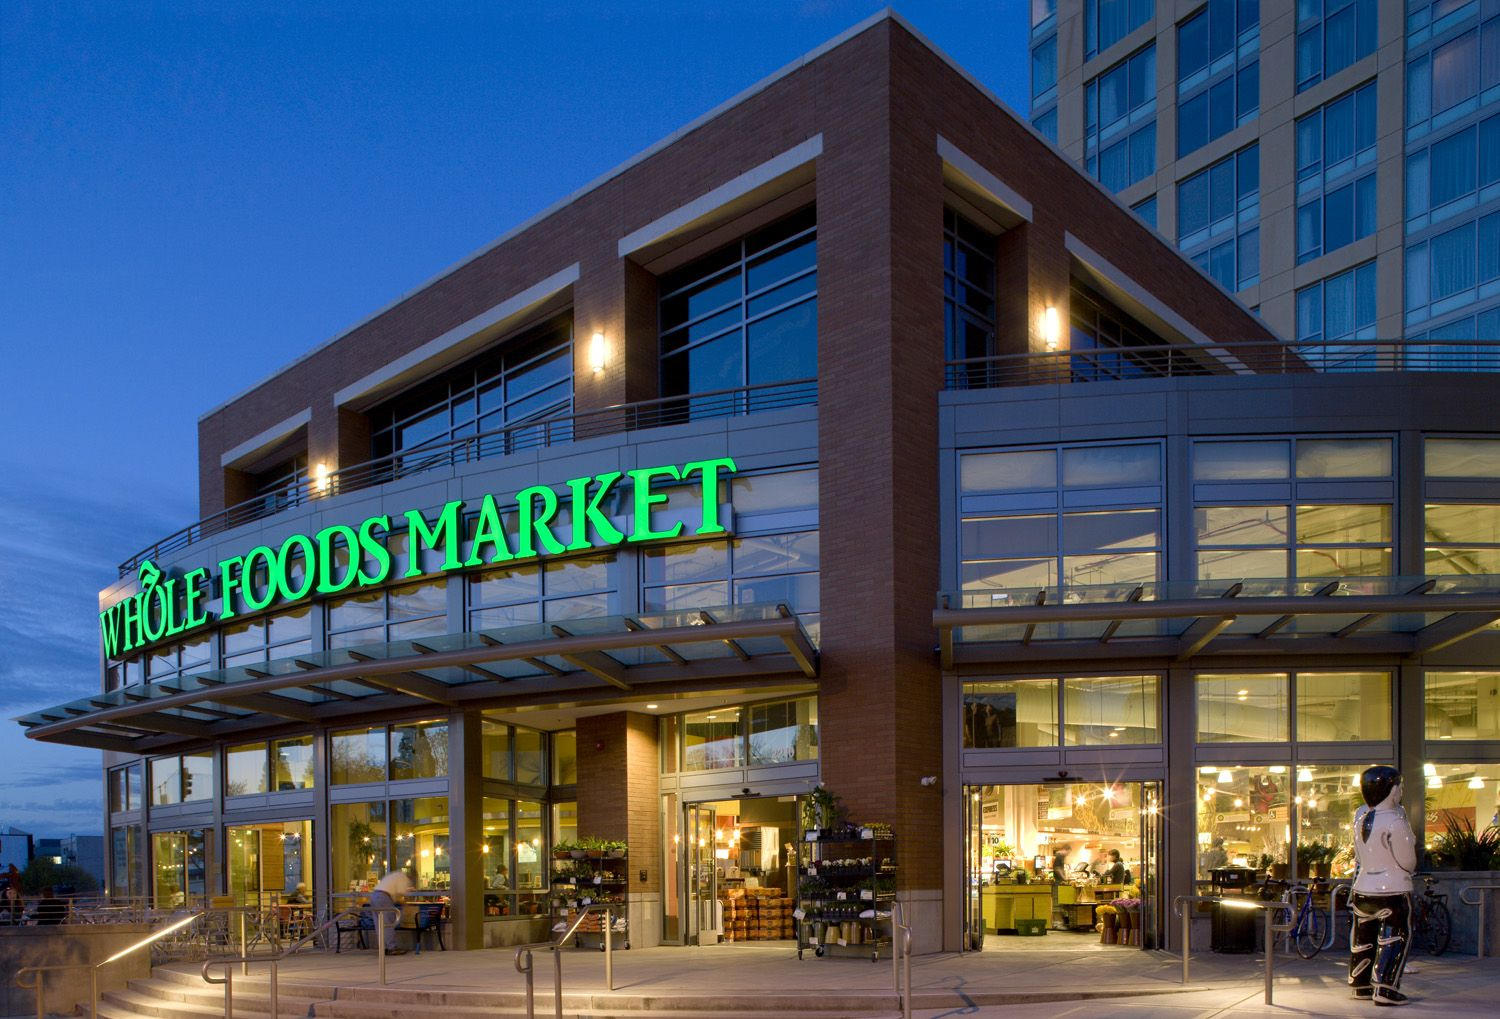 It is the first major urban grocery store in downtown